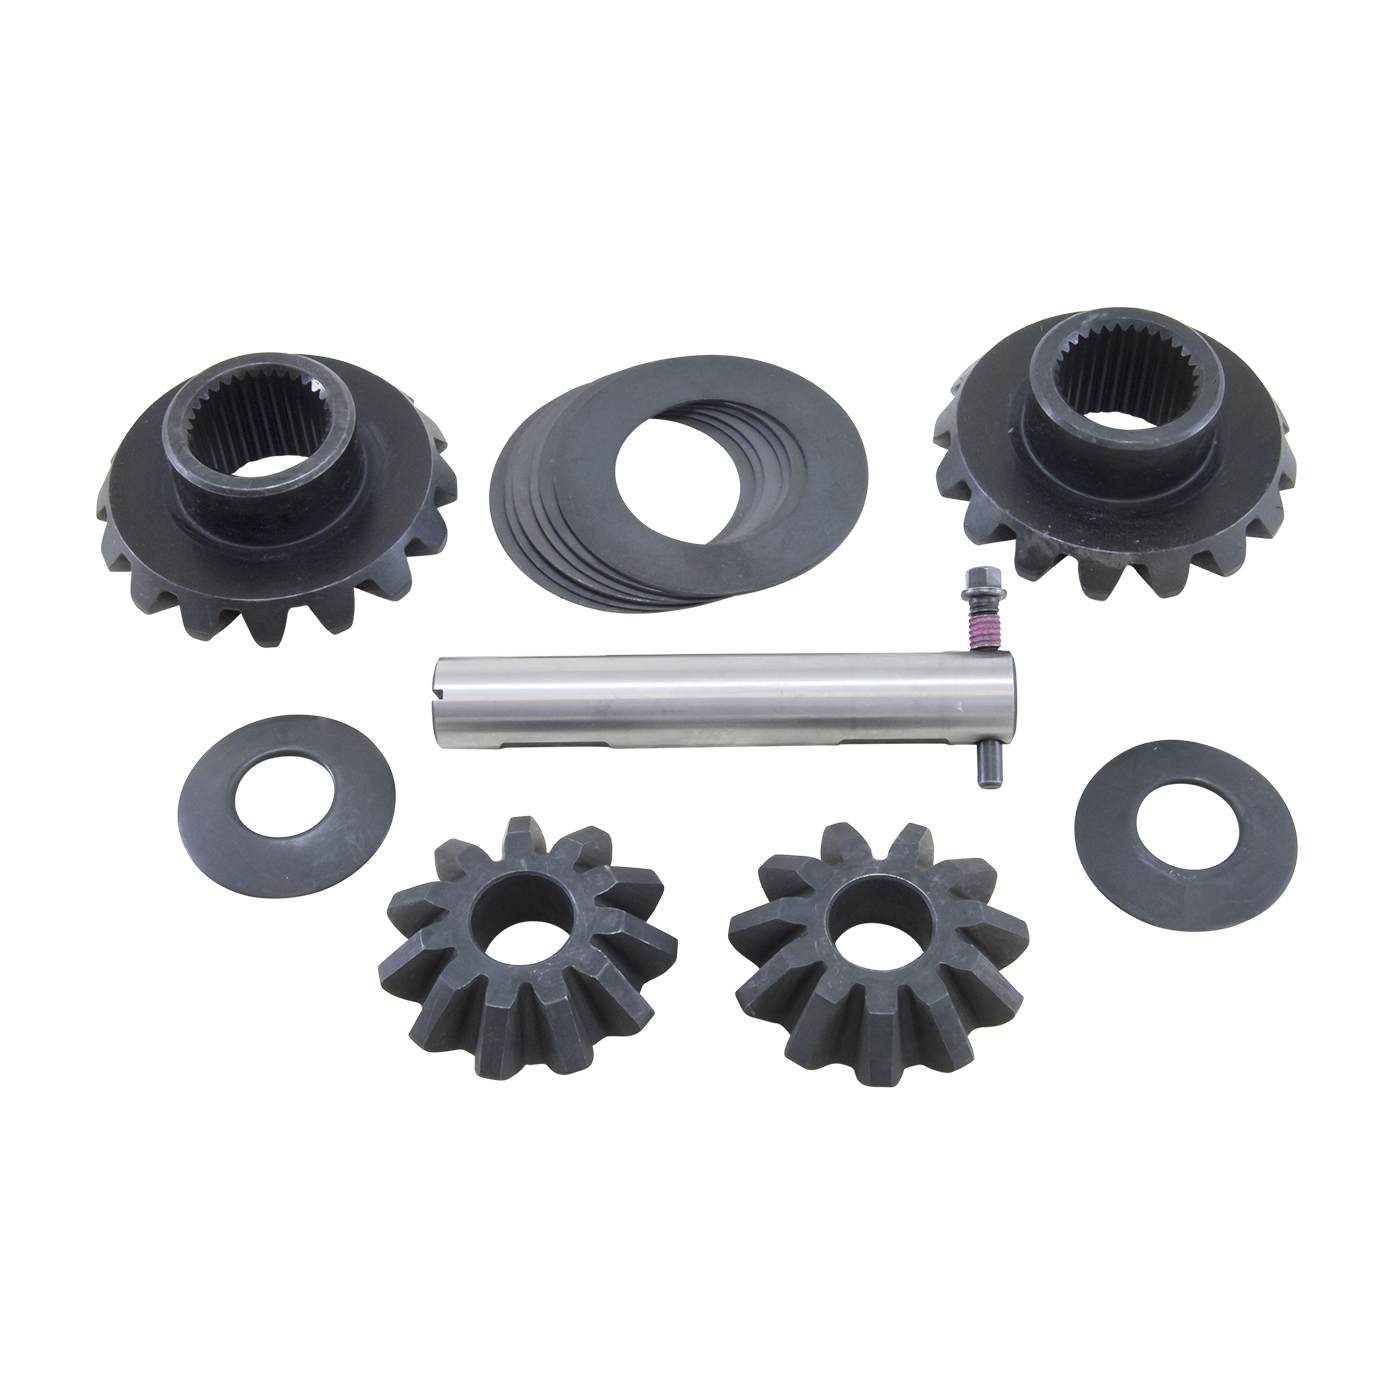 YPKC9.25-S-31 - Yukon standard open spider gear kit for 9.25